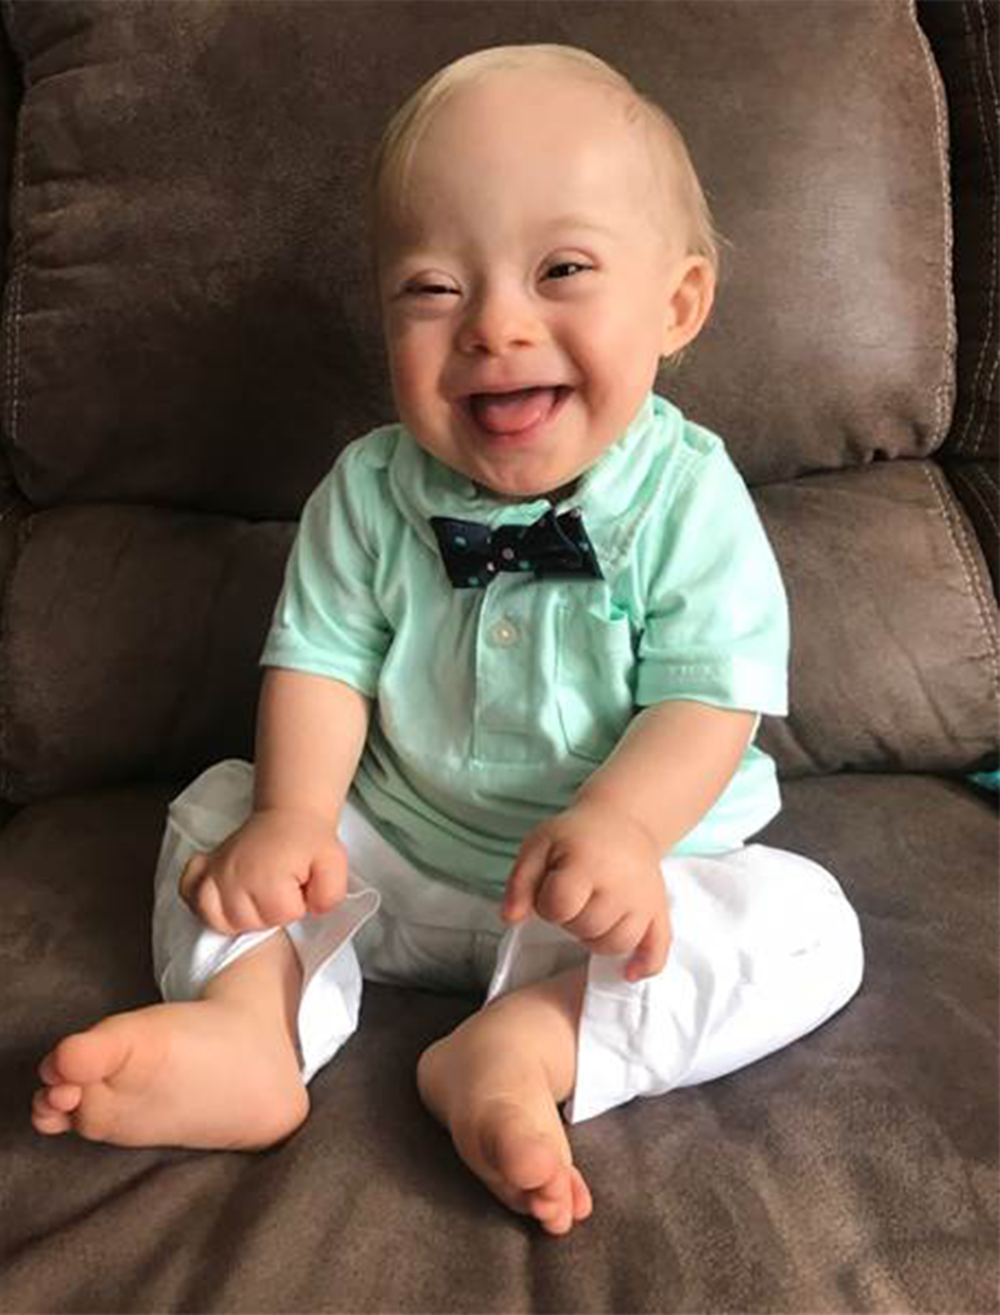 Meet Lucas, the official Gerber baby of 2018 - Gerber wanted to extend their brand beyond just baby food and break into the prestigious world of baby fashion. So we put together a campaign that uses Lucas's contest-winning photo to create his very own line of bow ties to go ga ga for.All proceeds from the bow ties go to charity.